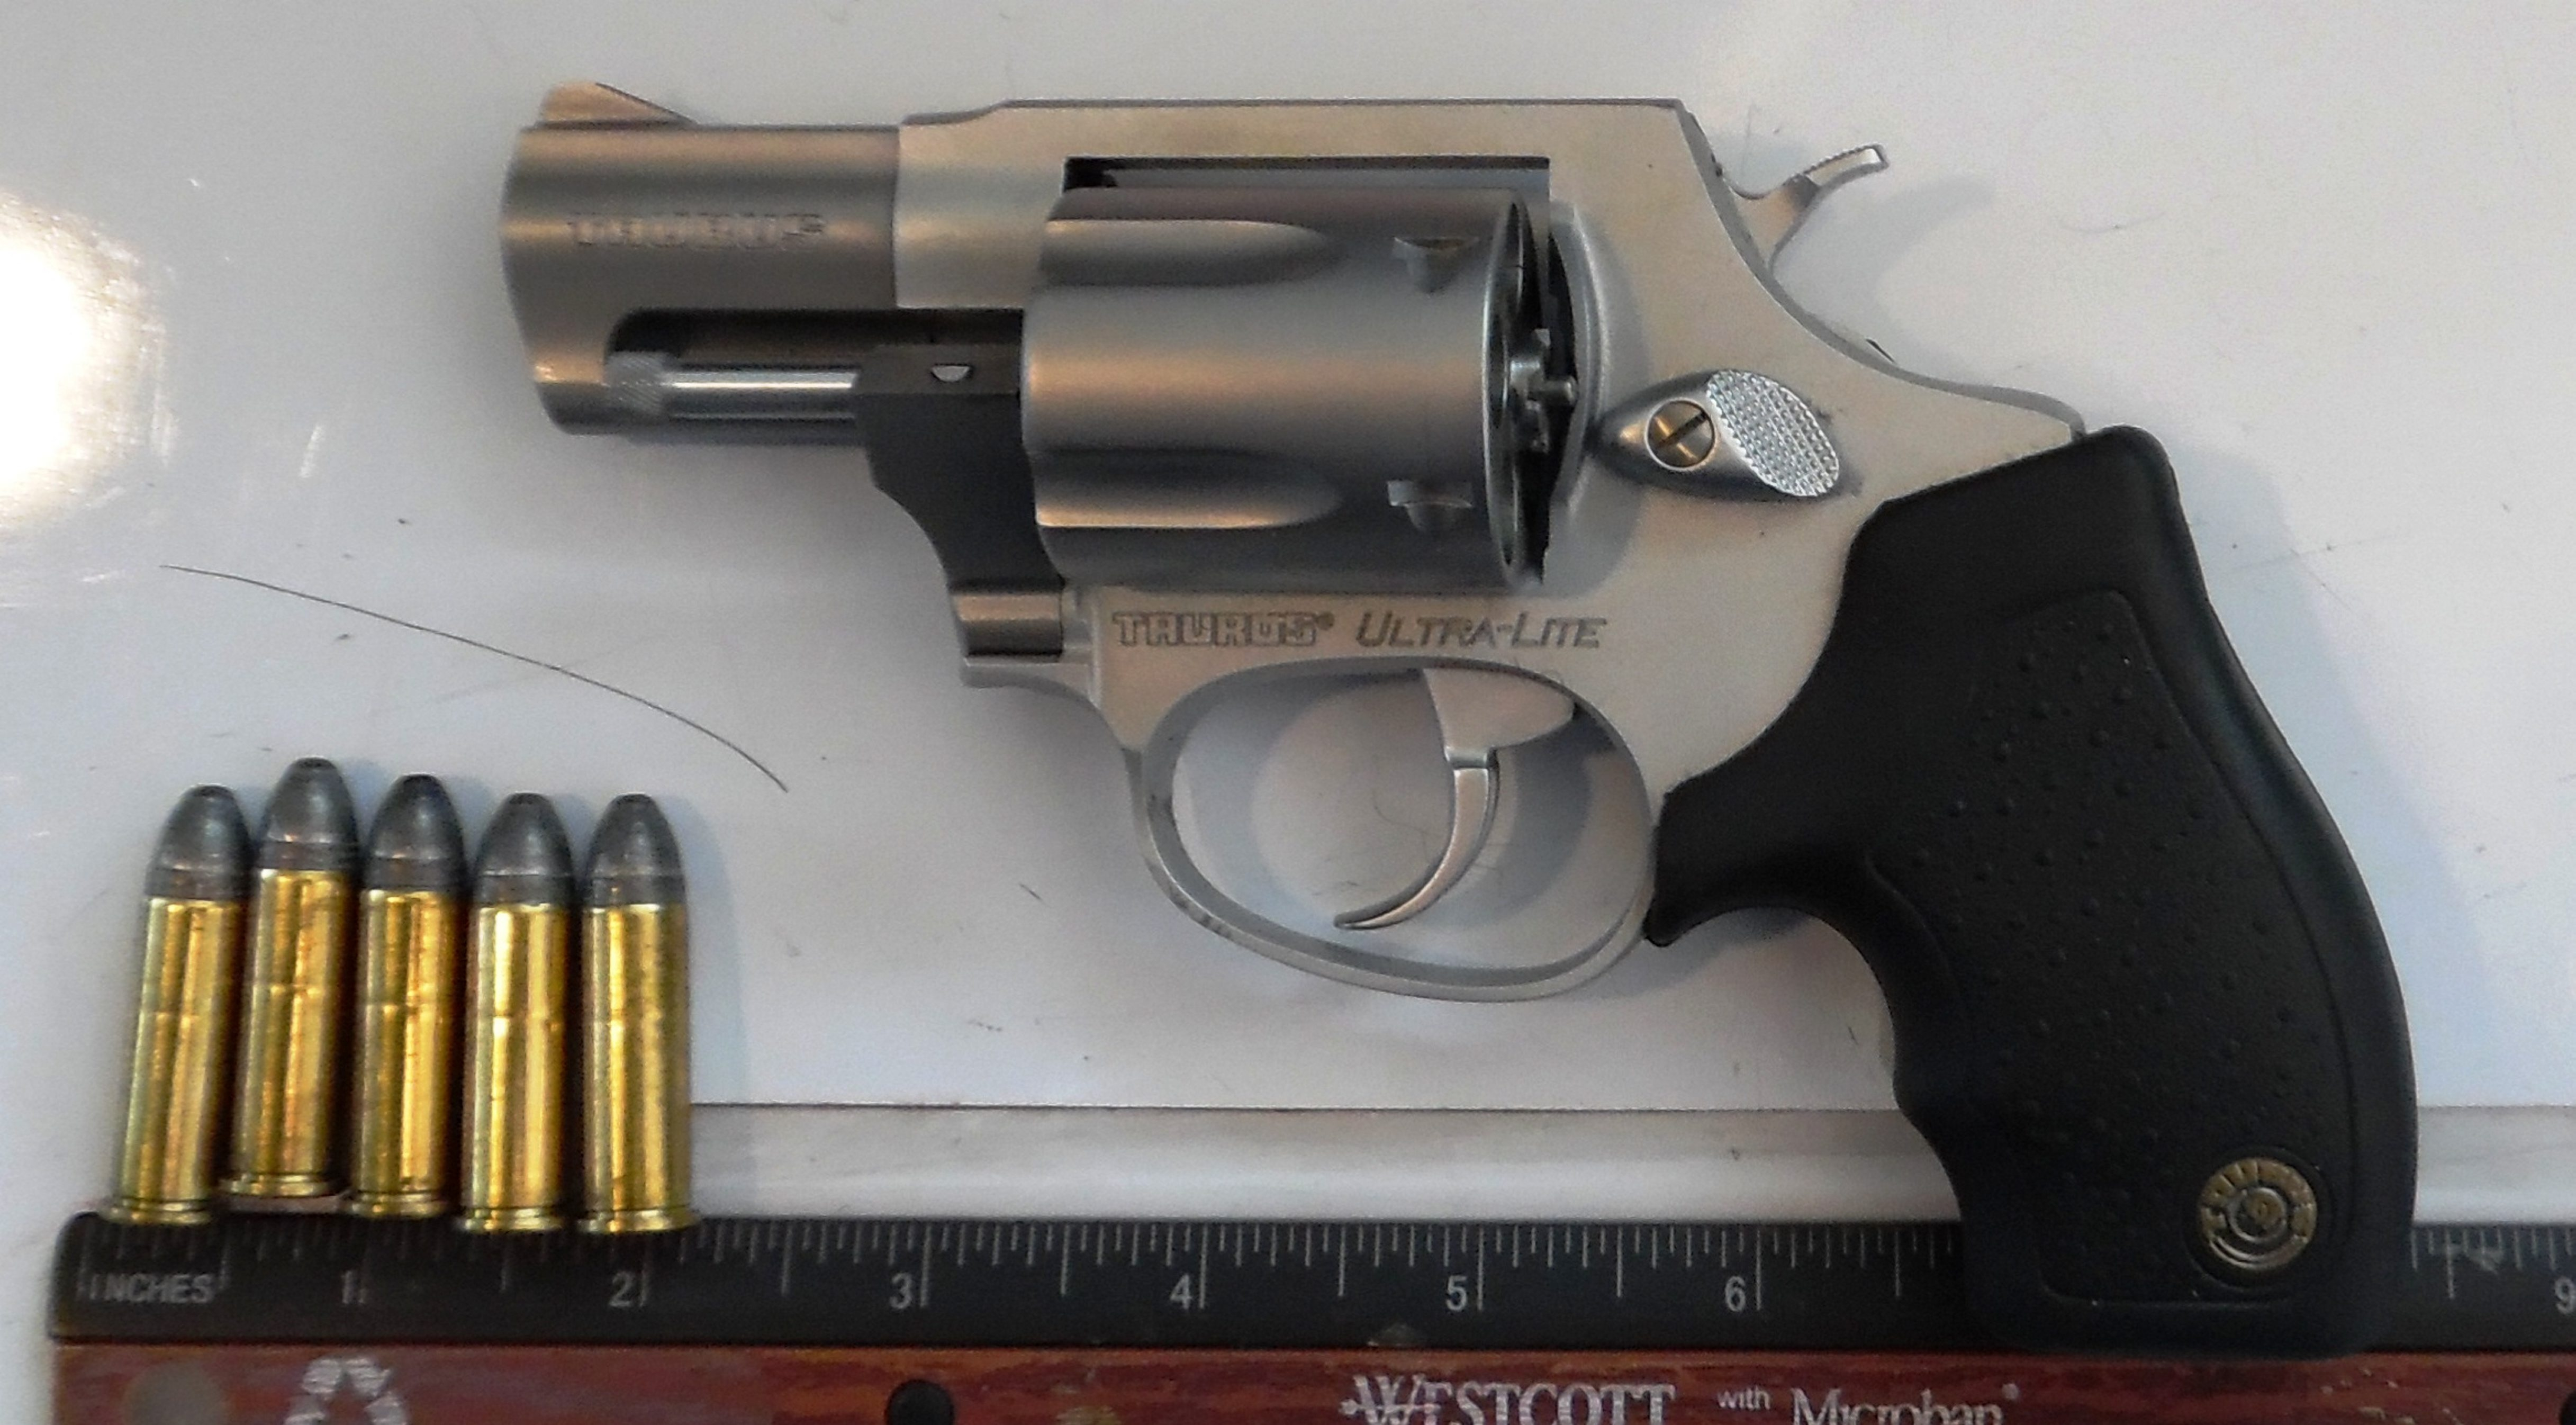 Loaded gun confiscated from a carry-on at Greater Buffalo Niagara Airport Friday.